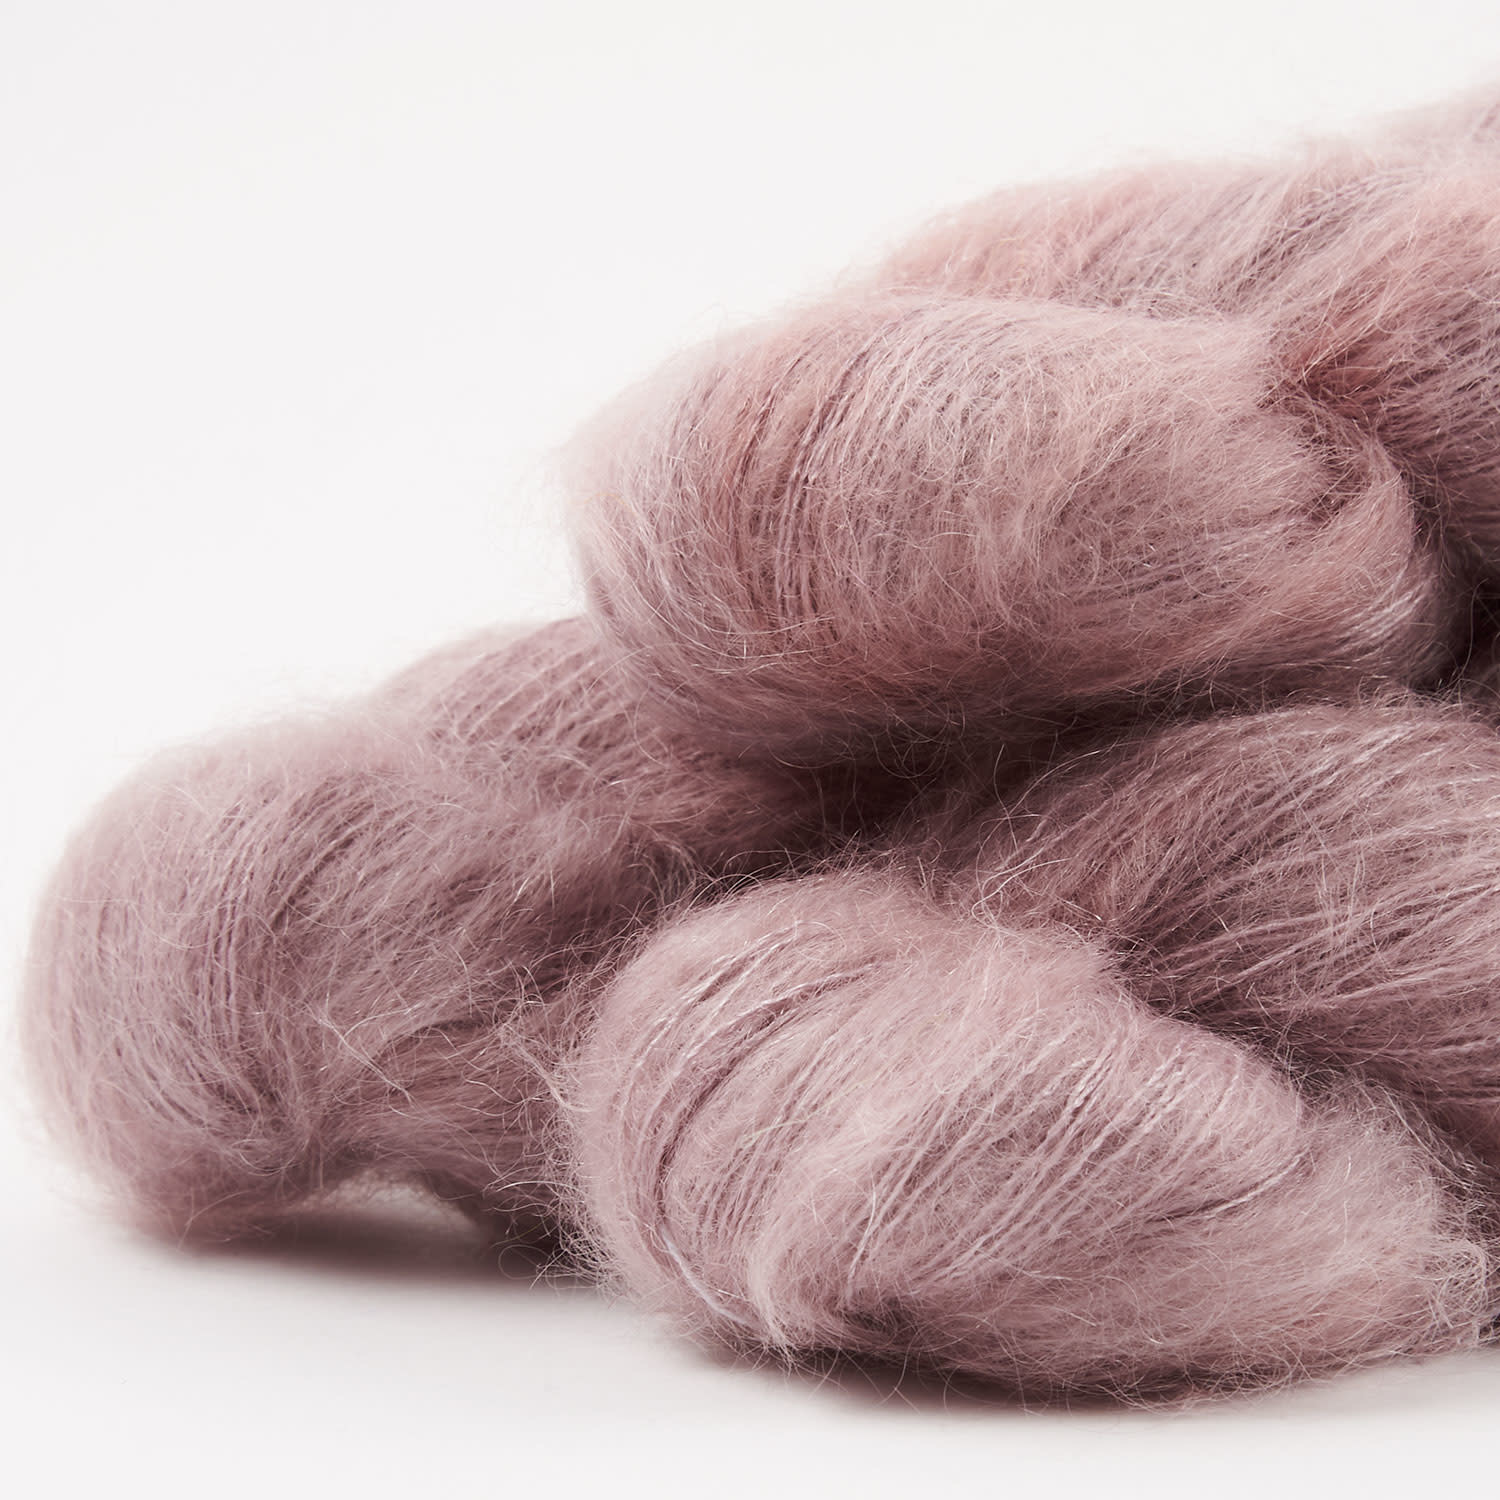 WALK collection KID MOHAIR LACE - SECRET